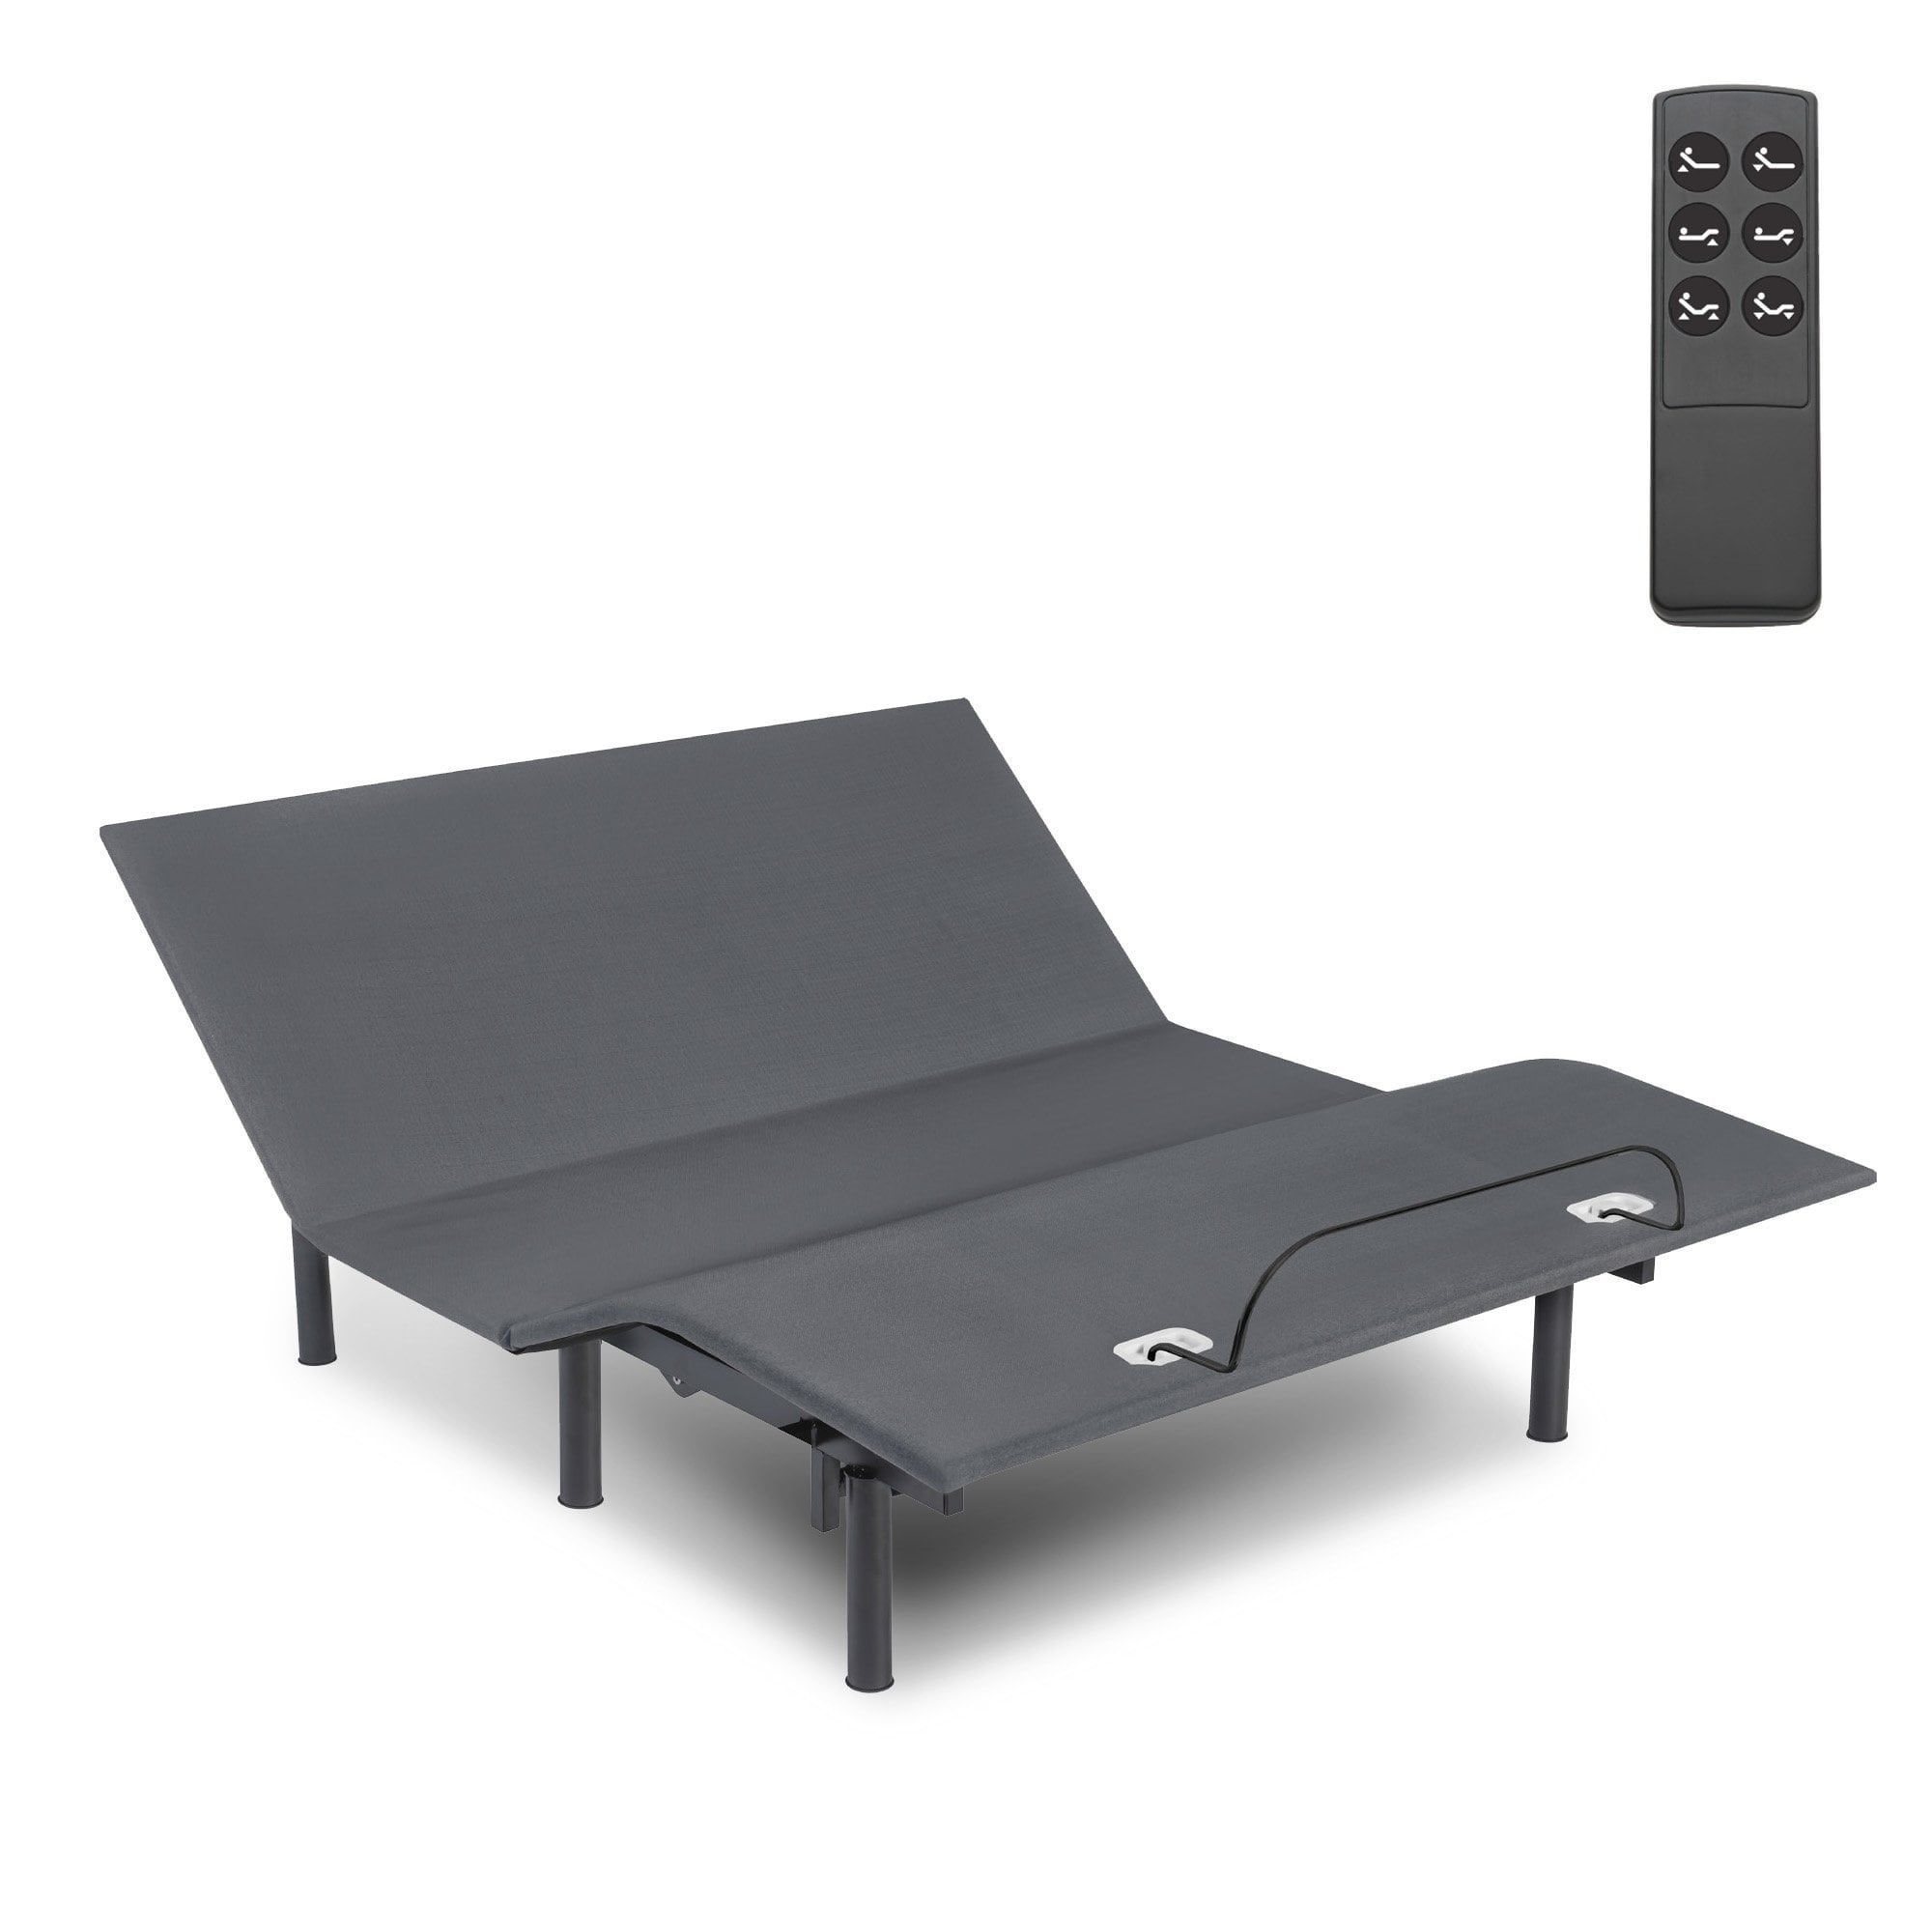 Symmetry EZ Adjustable Bed Base with Head and Foot